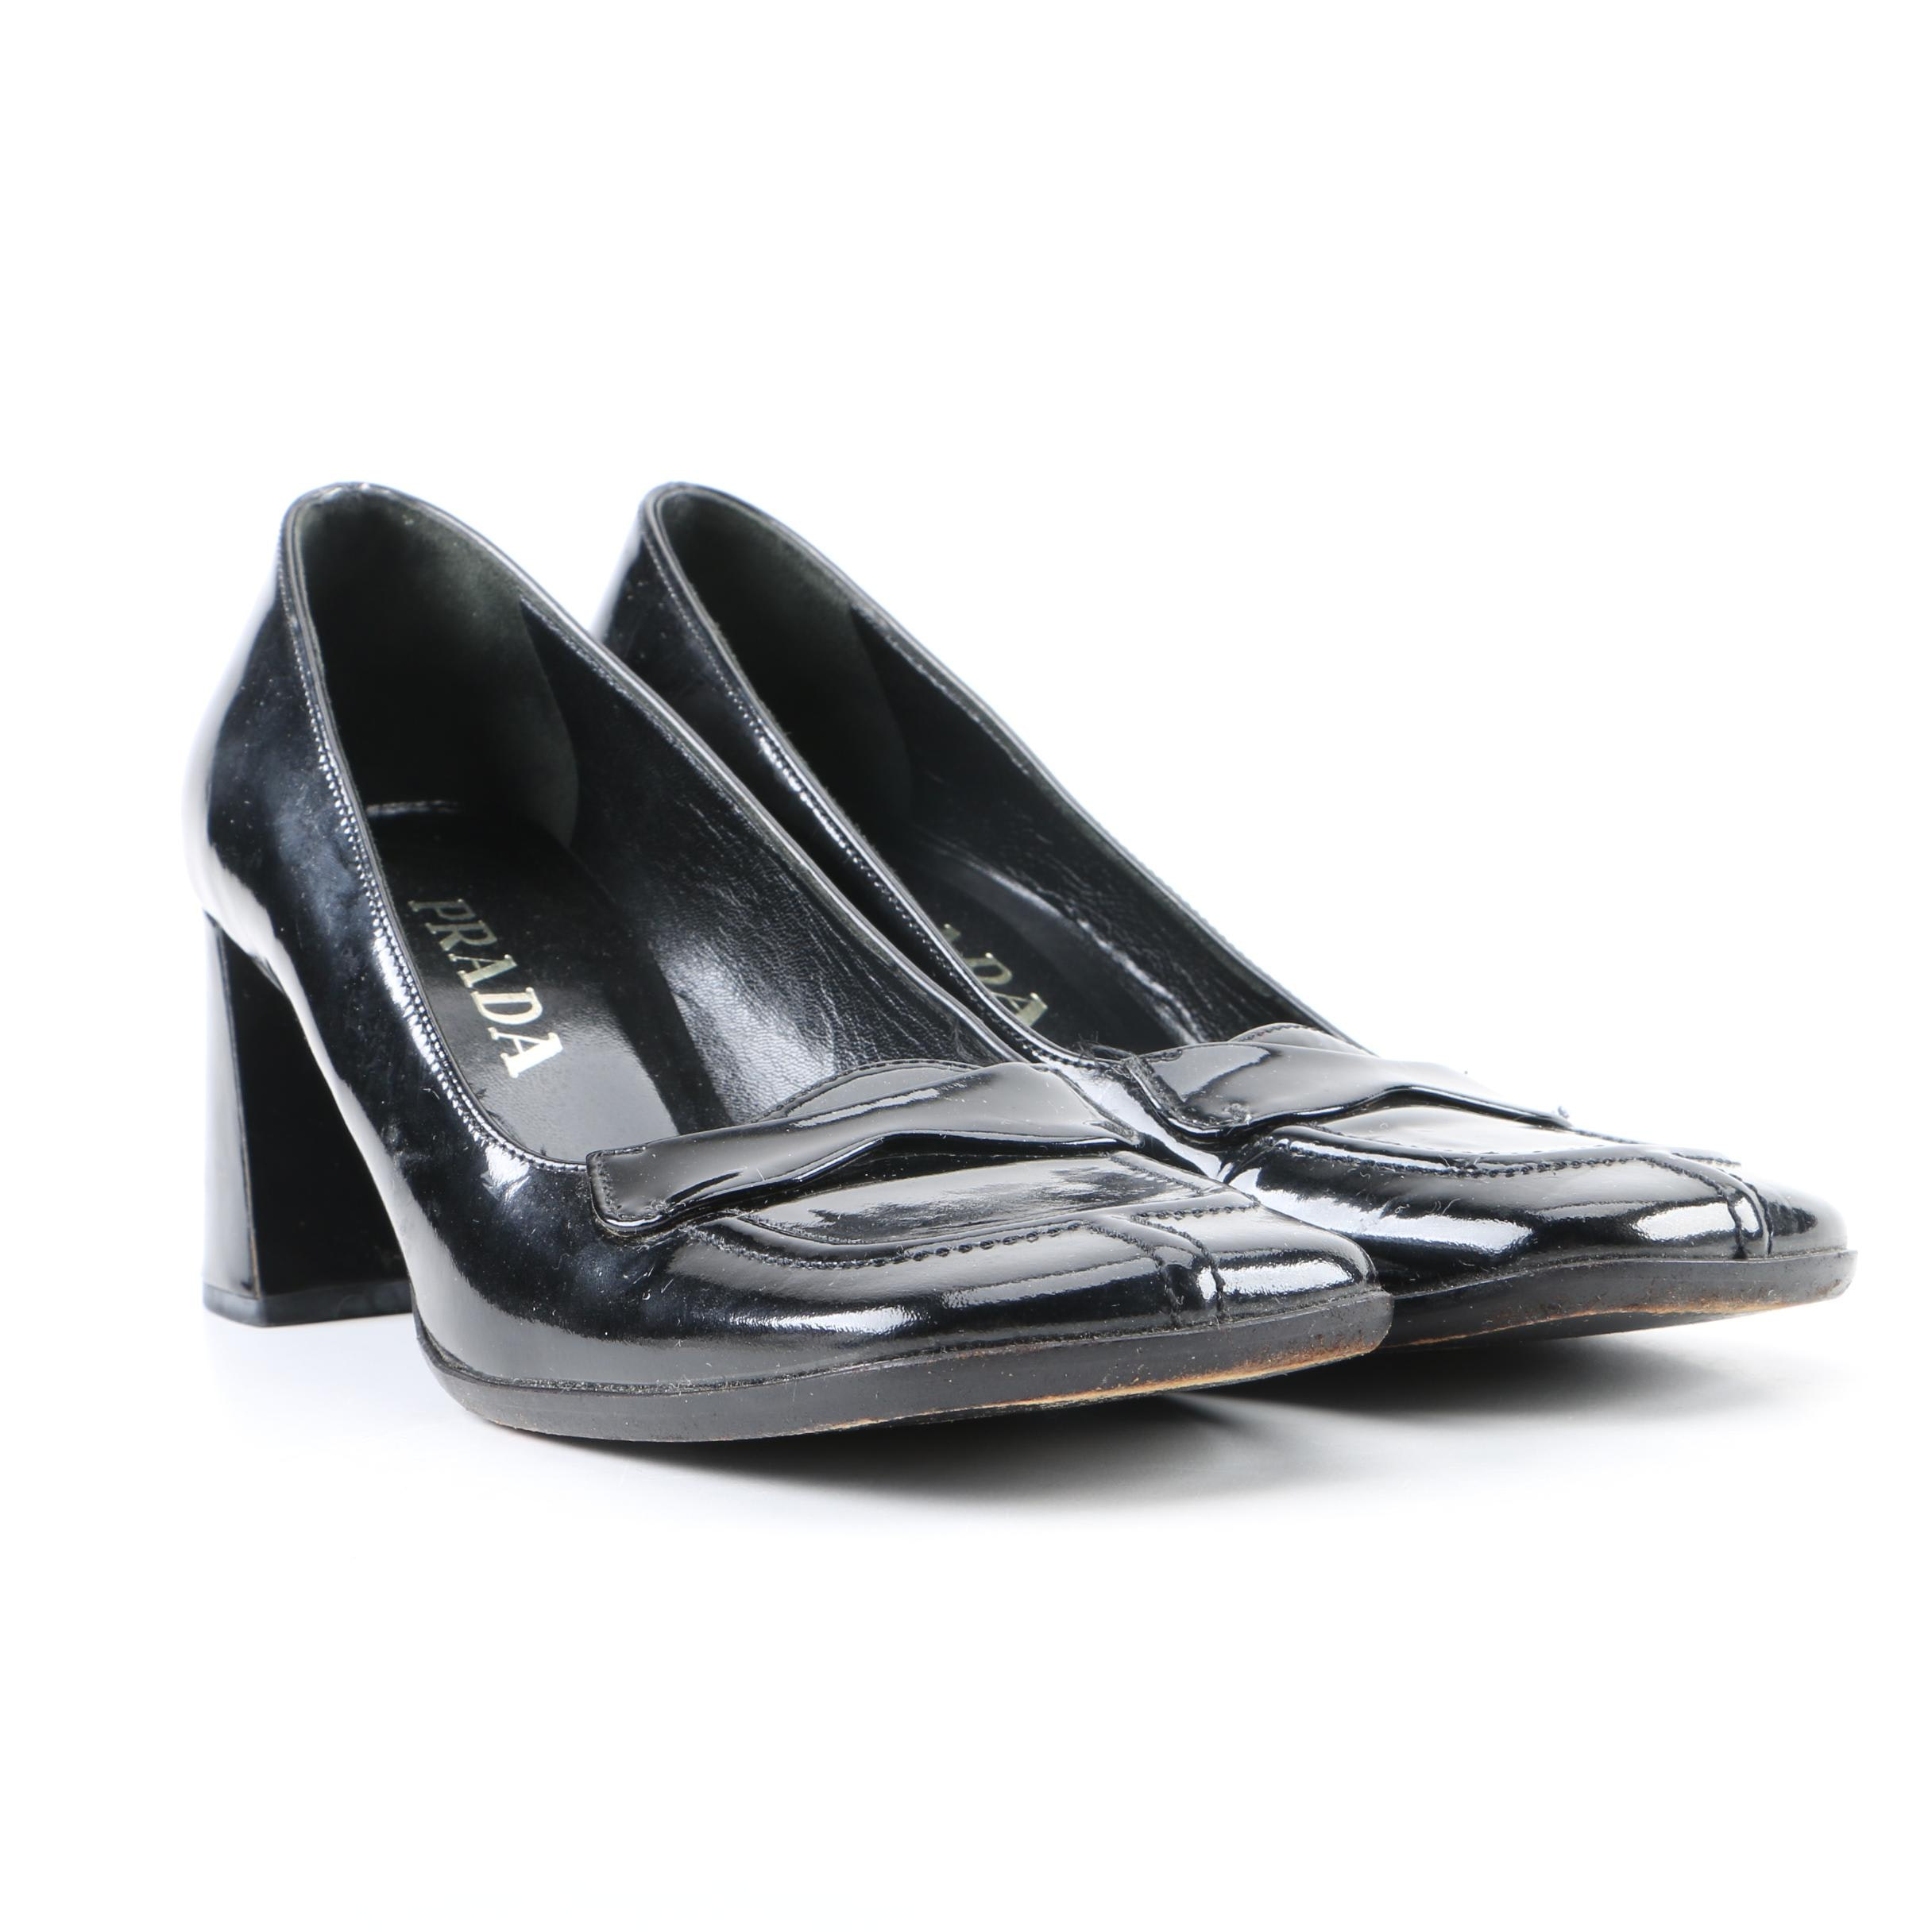 Prada Black Patent Leather High-Heeled Shoes